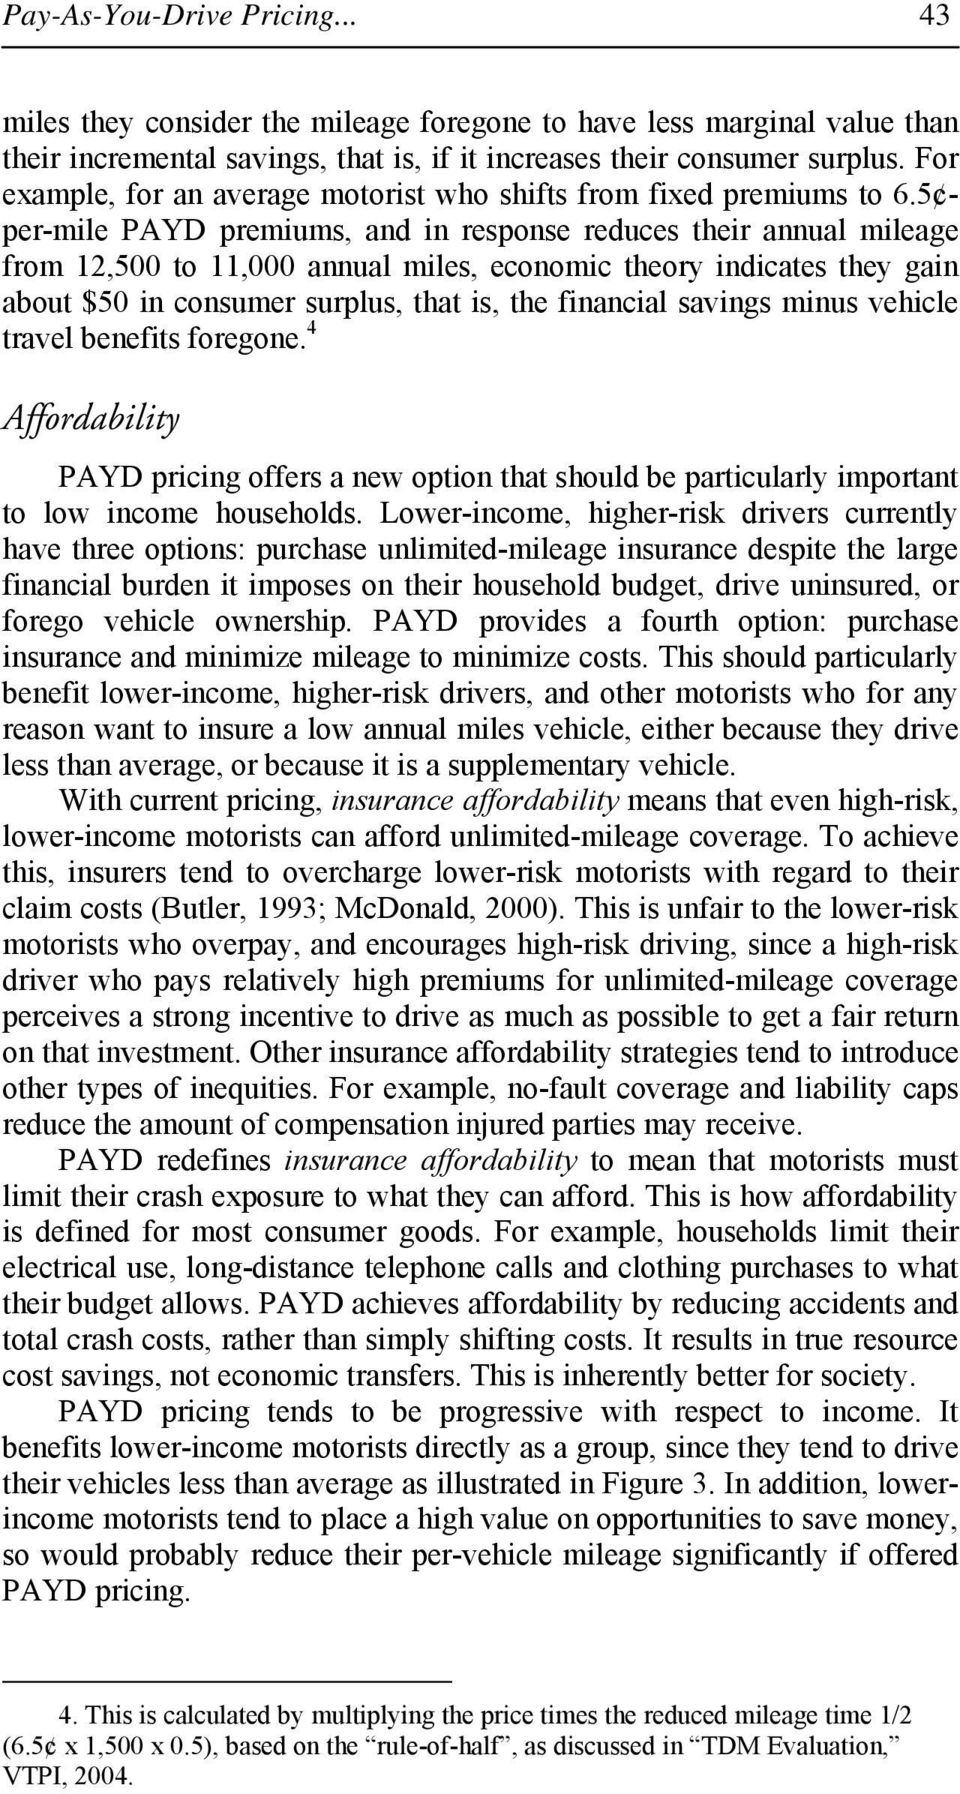 5 per-mile PAYD premiums, and in response reduces their annual mileage from 12,500 to 11,000 annual miles, economic theory indicates they gain about $50 in consumer surplus, that is, the financial